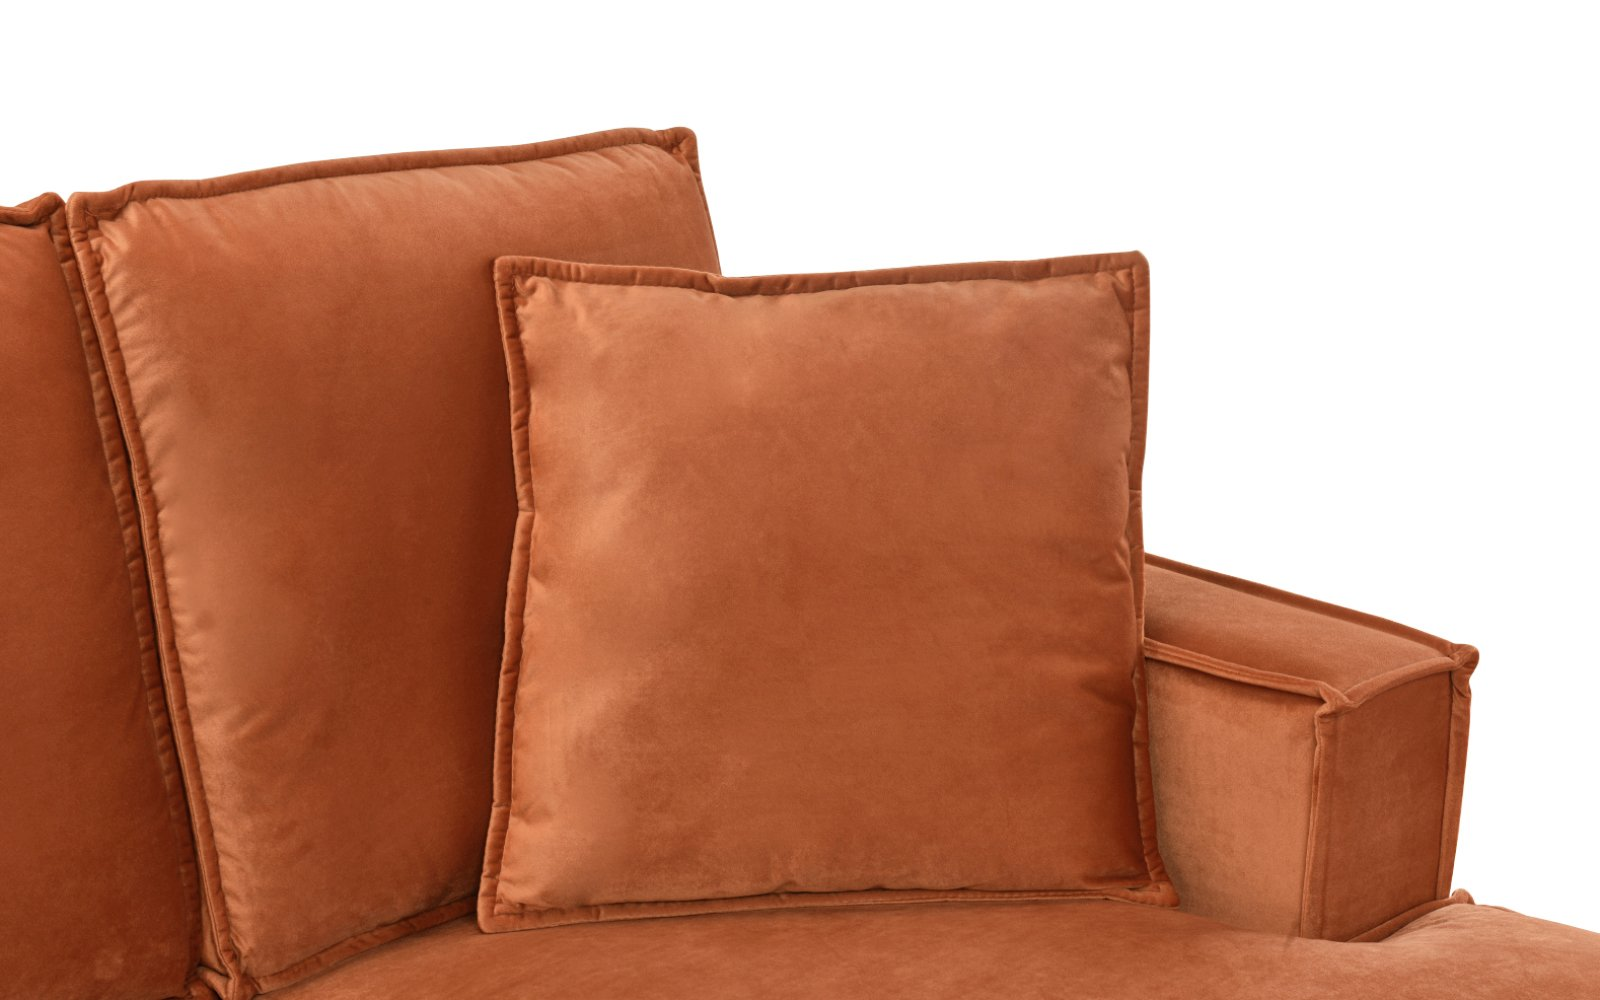 Groovy Details About Small Space L Shape Sofa Velvet Sectional With Matching Pillows 2 Rust Theyellowbook Wood Chair Design Ideas Theyellowbookinfo